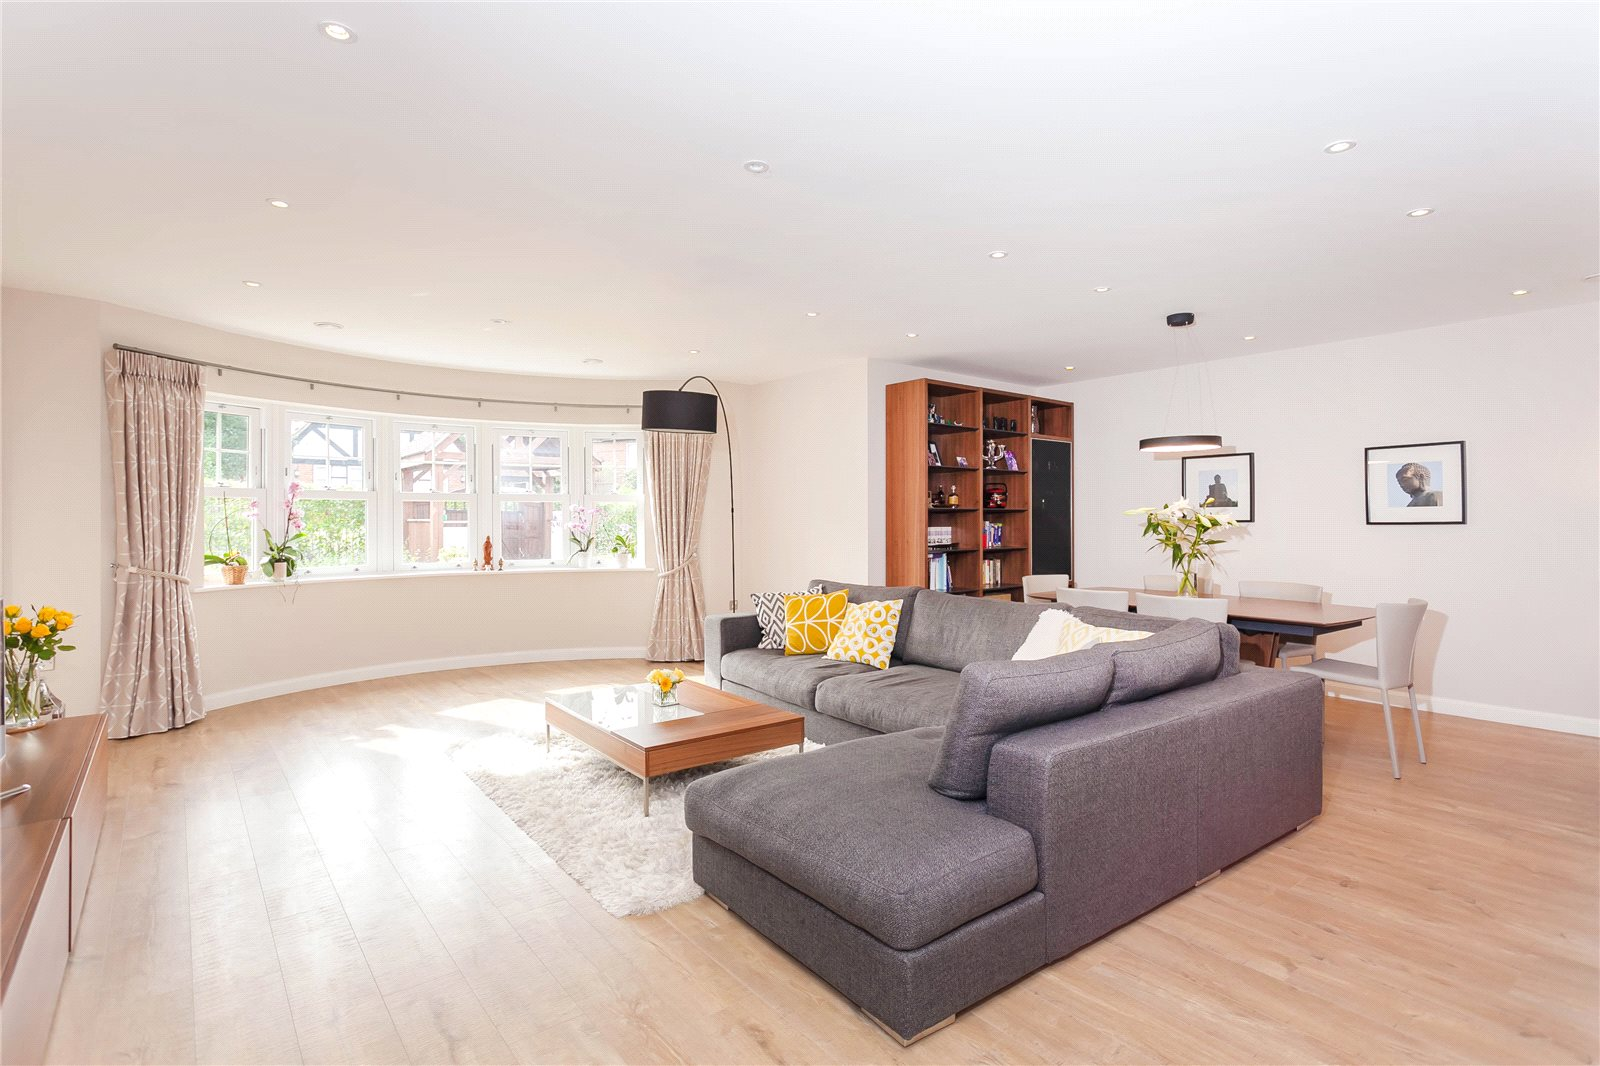 Additional photo for property listing at Baytrees, 20 South Park View, Gerrards Cross, Buckinghamshire, SL9 Gerrards Cross, Αγγλια